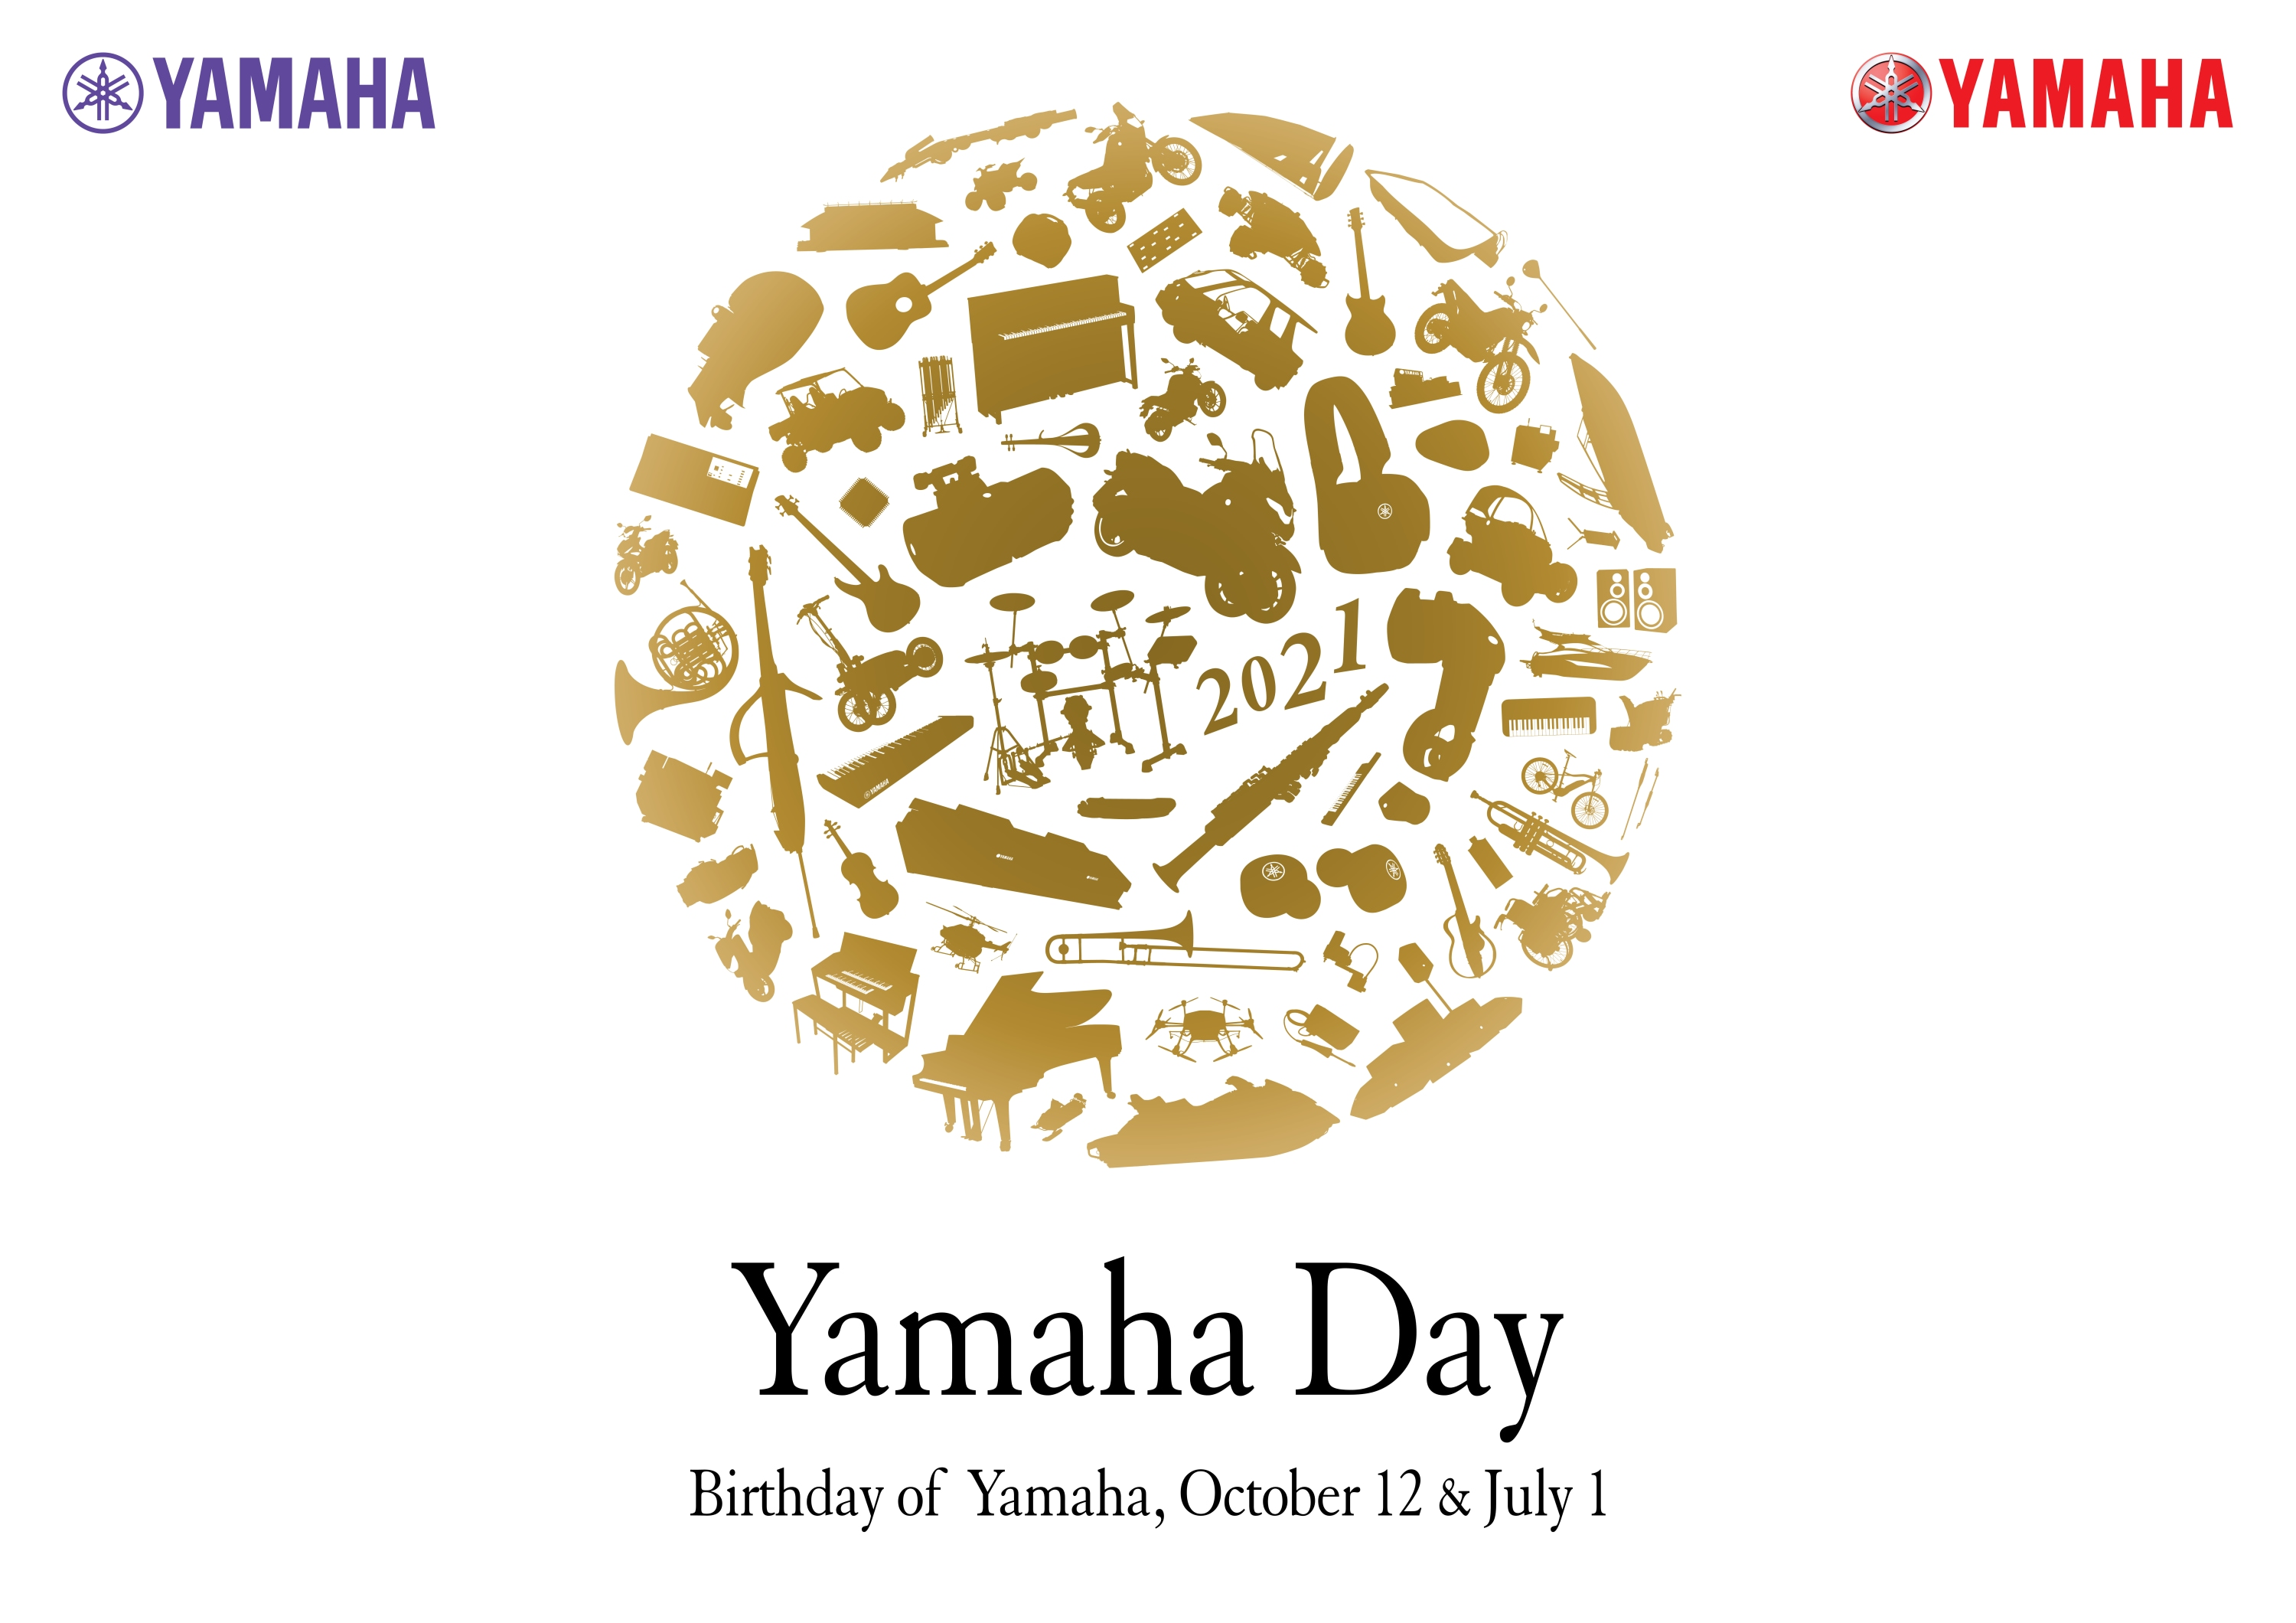 The 12th of October is Yamaha Day  where we celebrate the anniversary of the establishment of Yamaha Corporation on October 12, 1897!